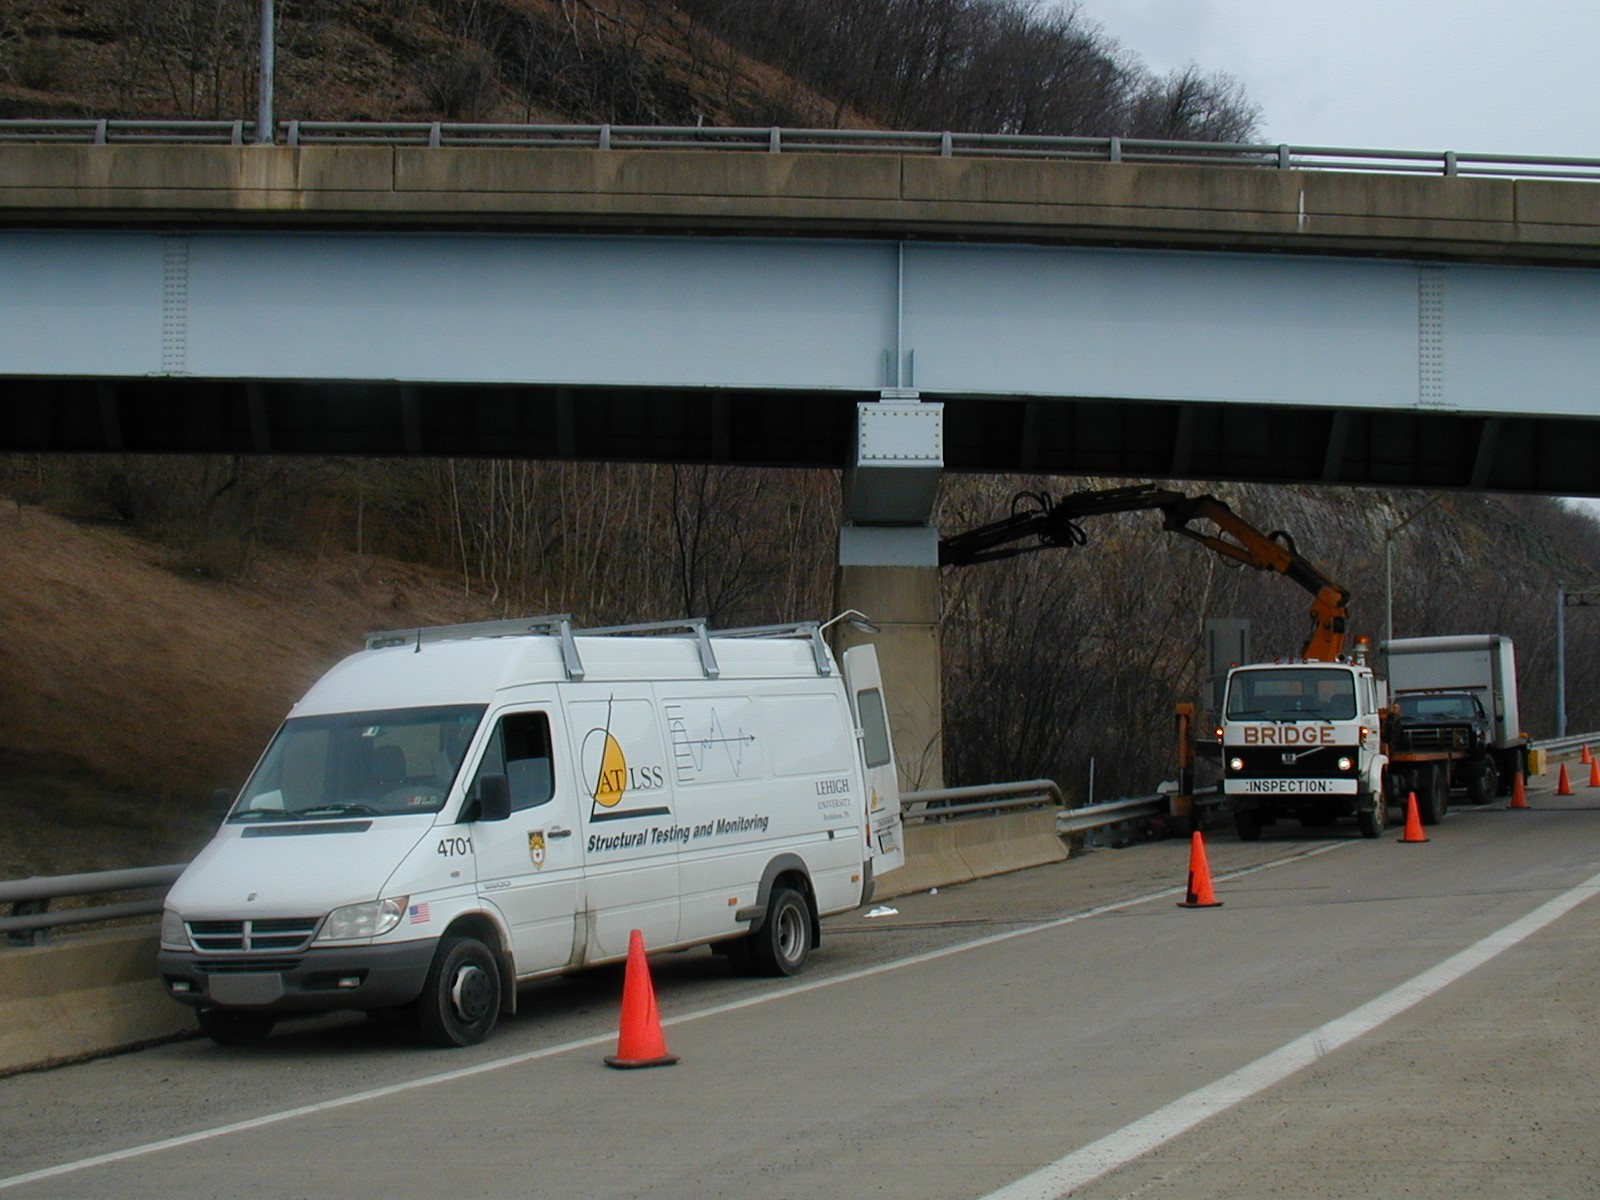 ATLSS vehicle under a bridge